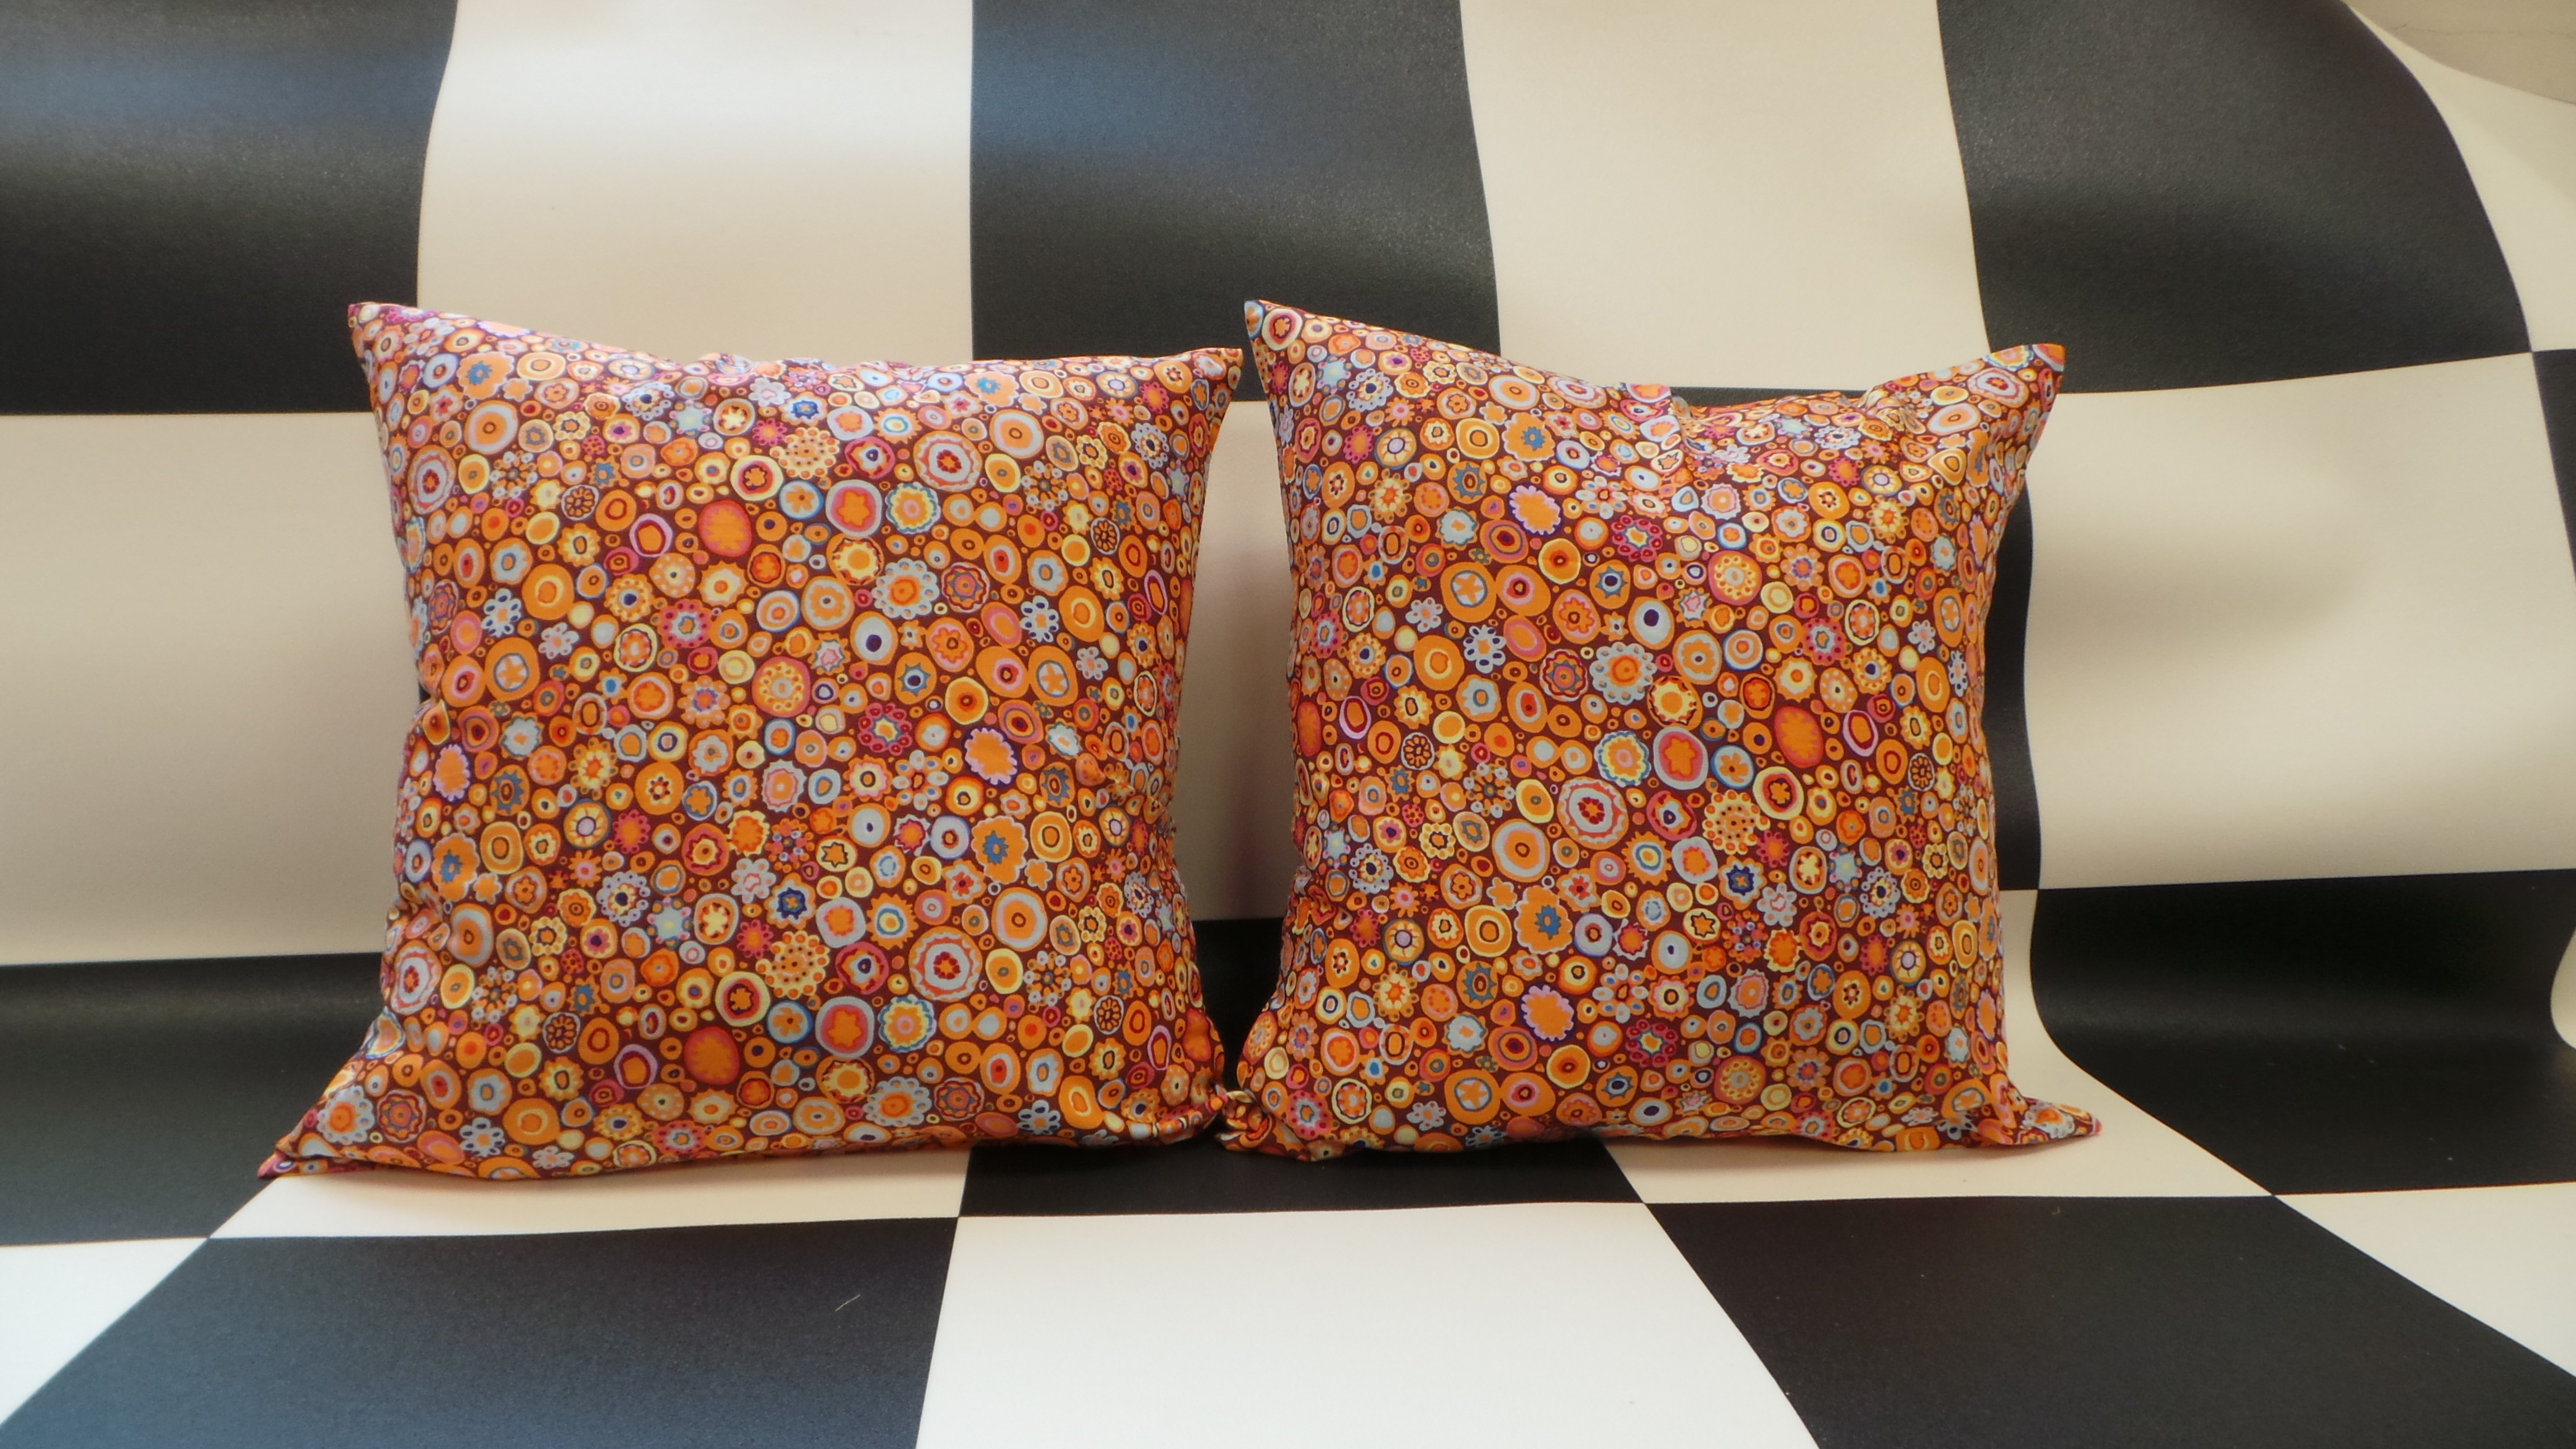 Campervan Curtains and Cushions - Ready to Go